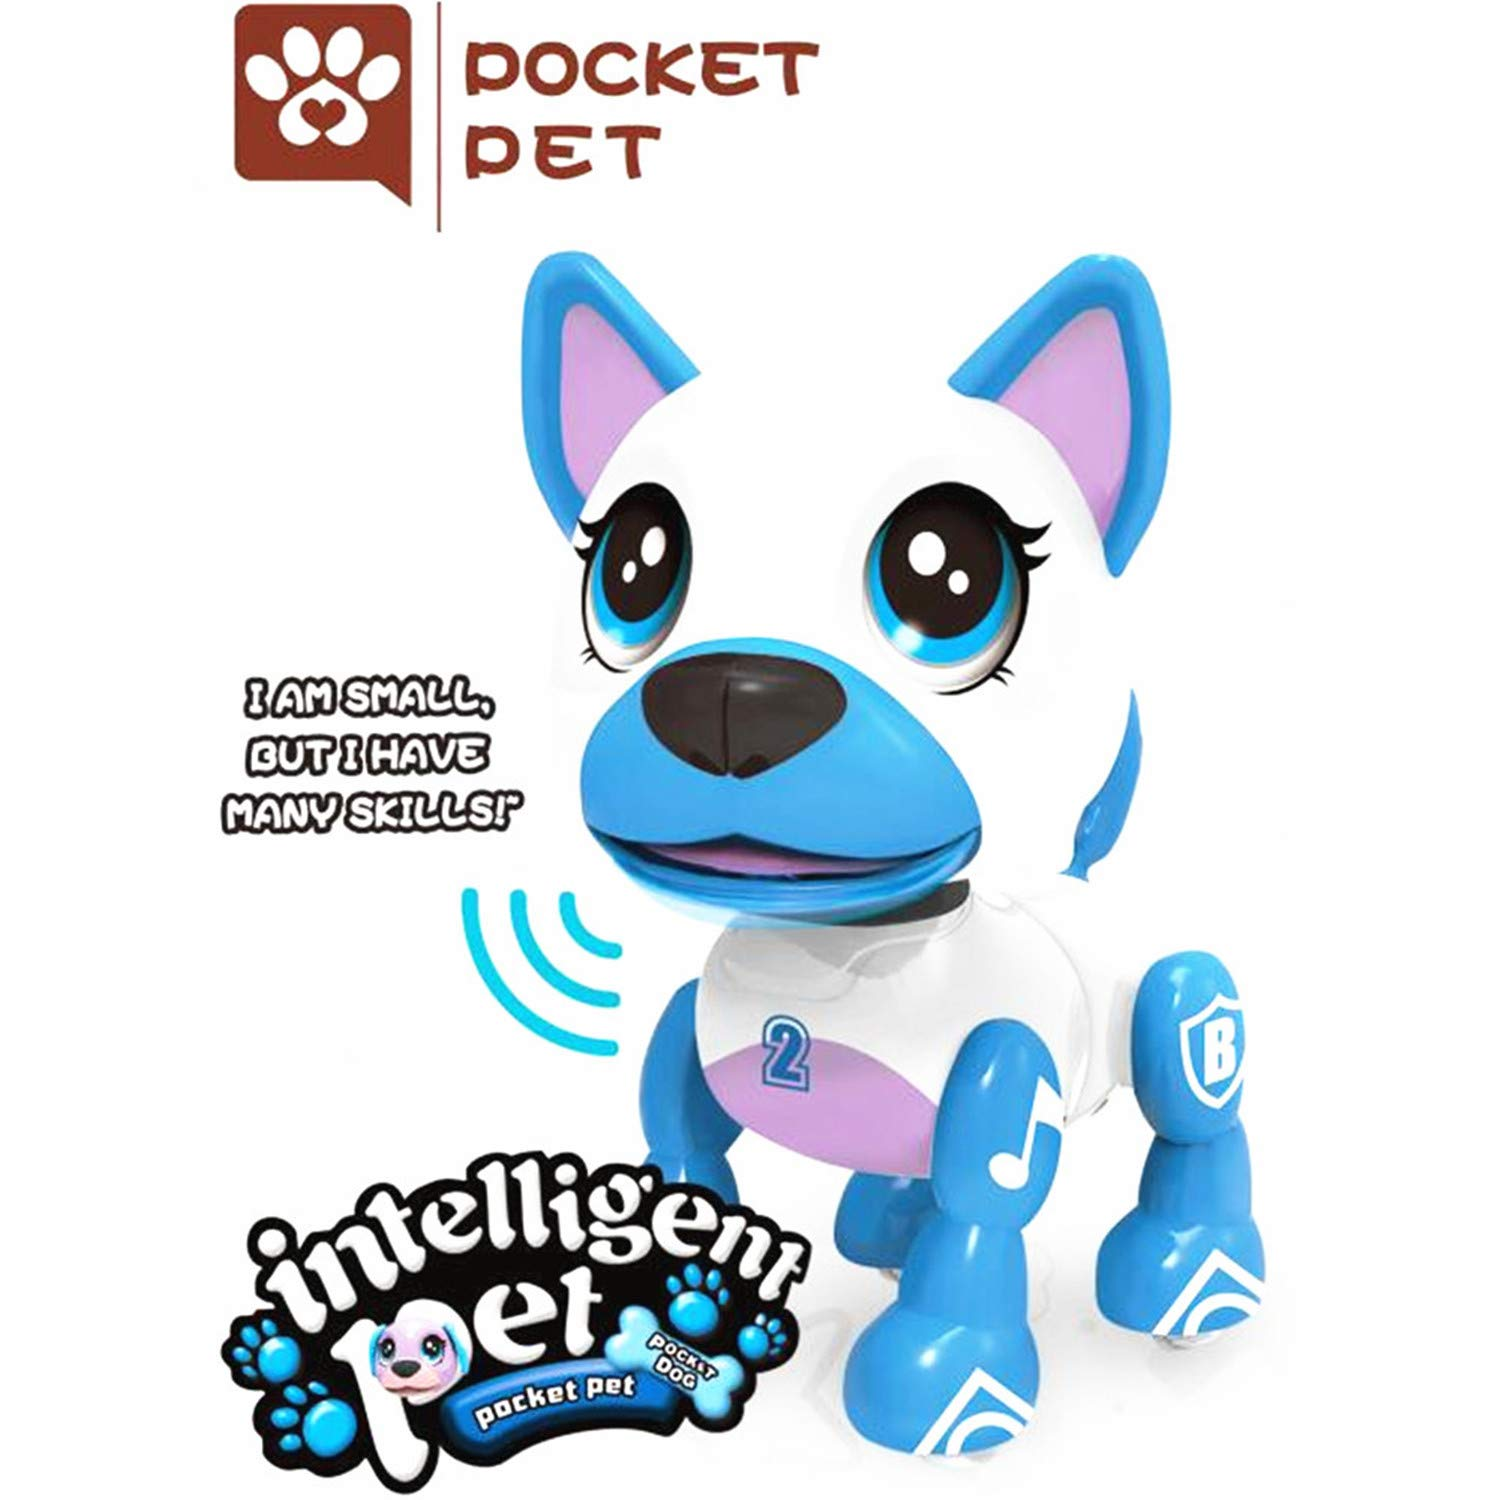 SoundOriginal Electronic Intelligent Pocket Pet Dog Interactive Puppy purple Speech Recognition Dog Robot Dog Popular Toys Smart Pet Toy for Age 3 4 5 6 7 8 9 10 Year Old Boys Girls and Kids Gifts